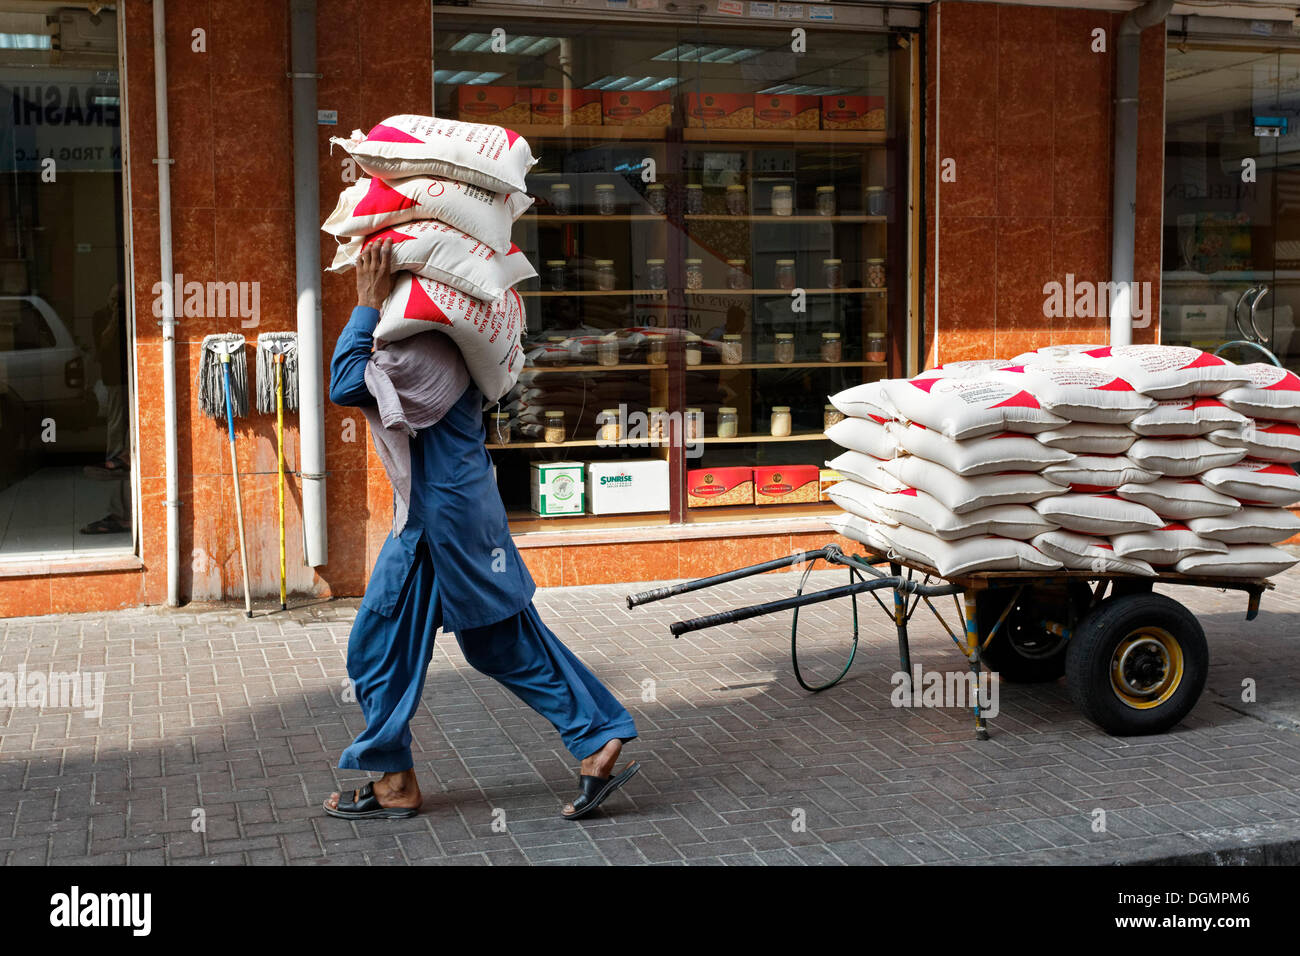 Worker carrying sacks of lentils on his shoulder, Deira, Old Souk, Dubai, United Arab Emirates, Middle East - Stock Image